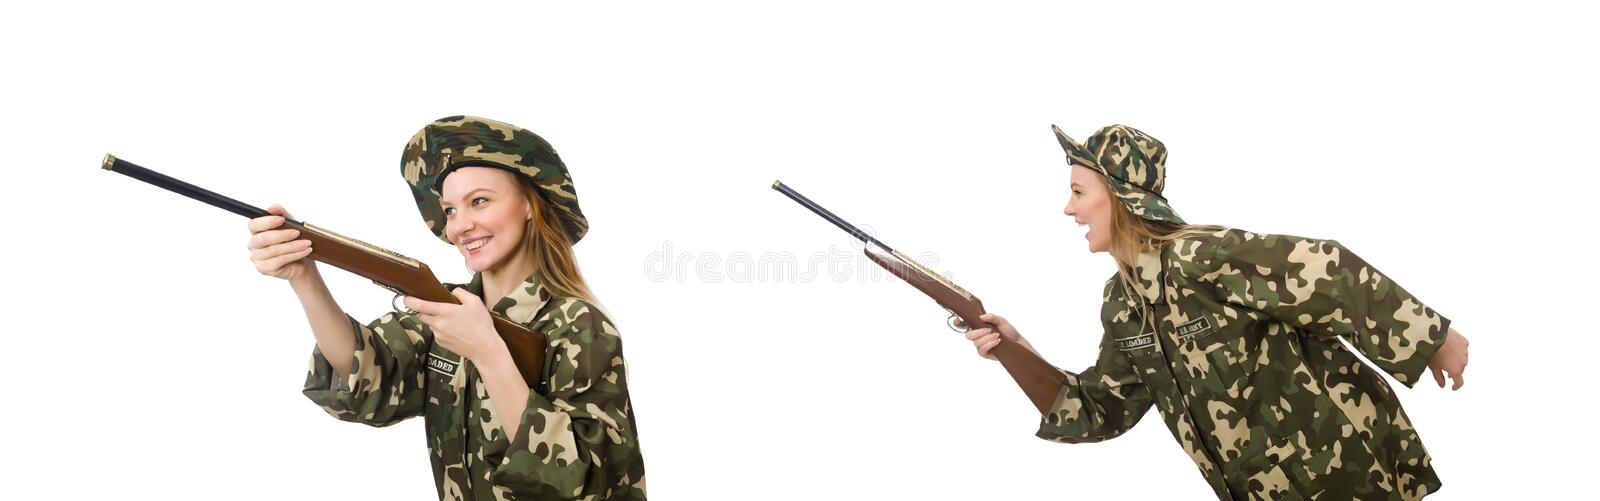 Girl in military uniform holding the gun isolated on white royalty free stock image